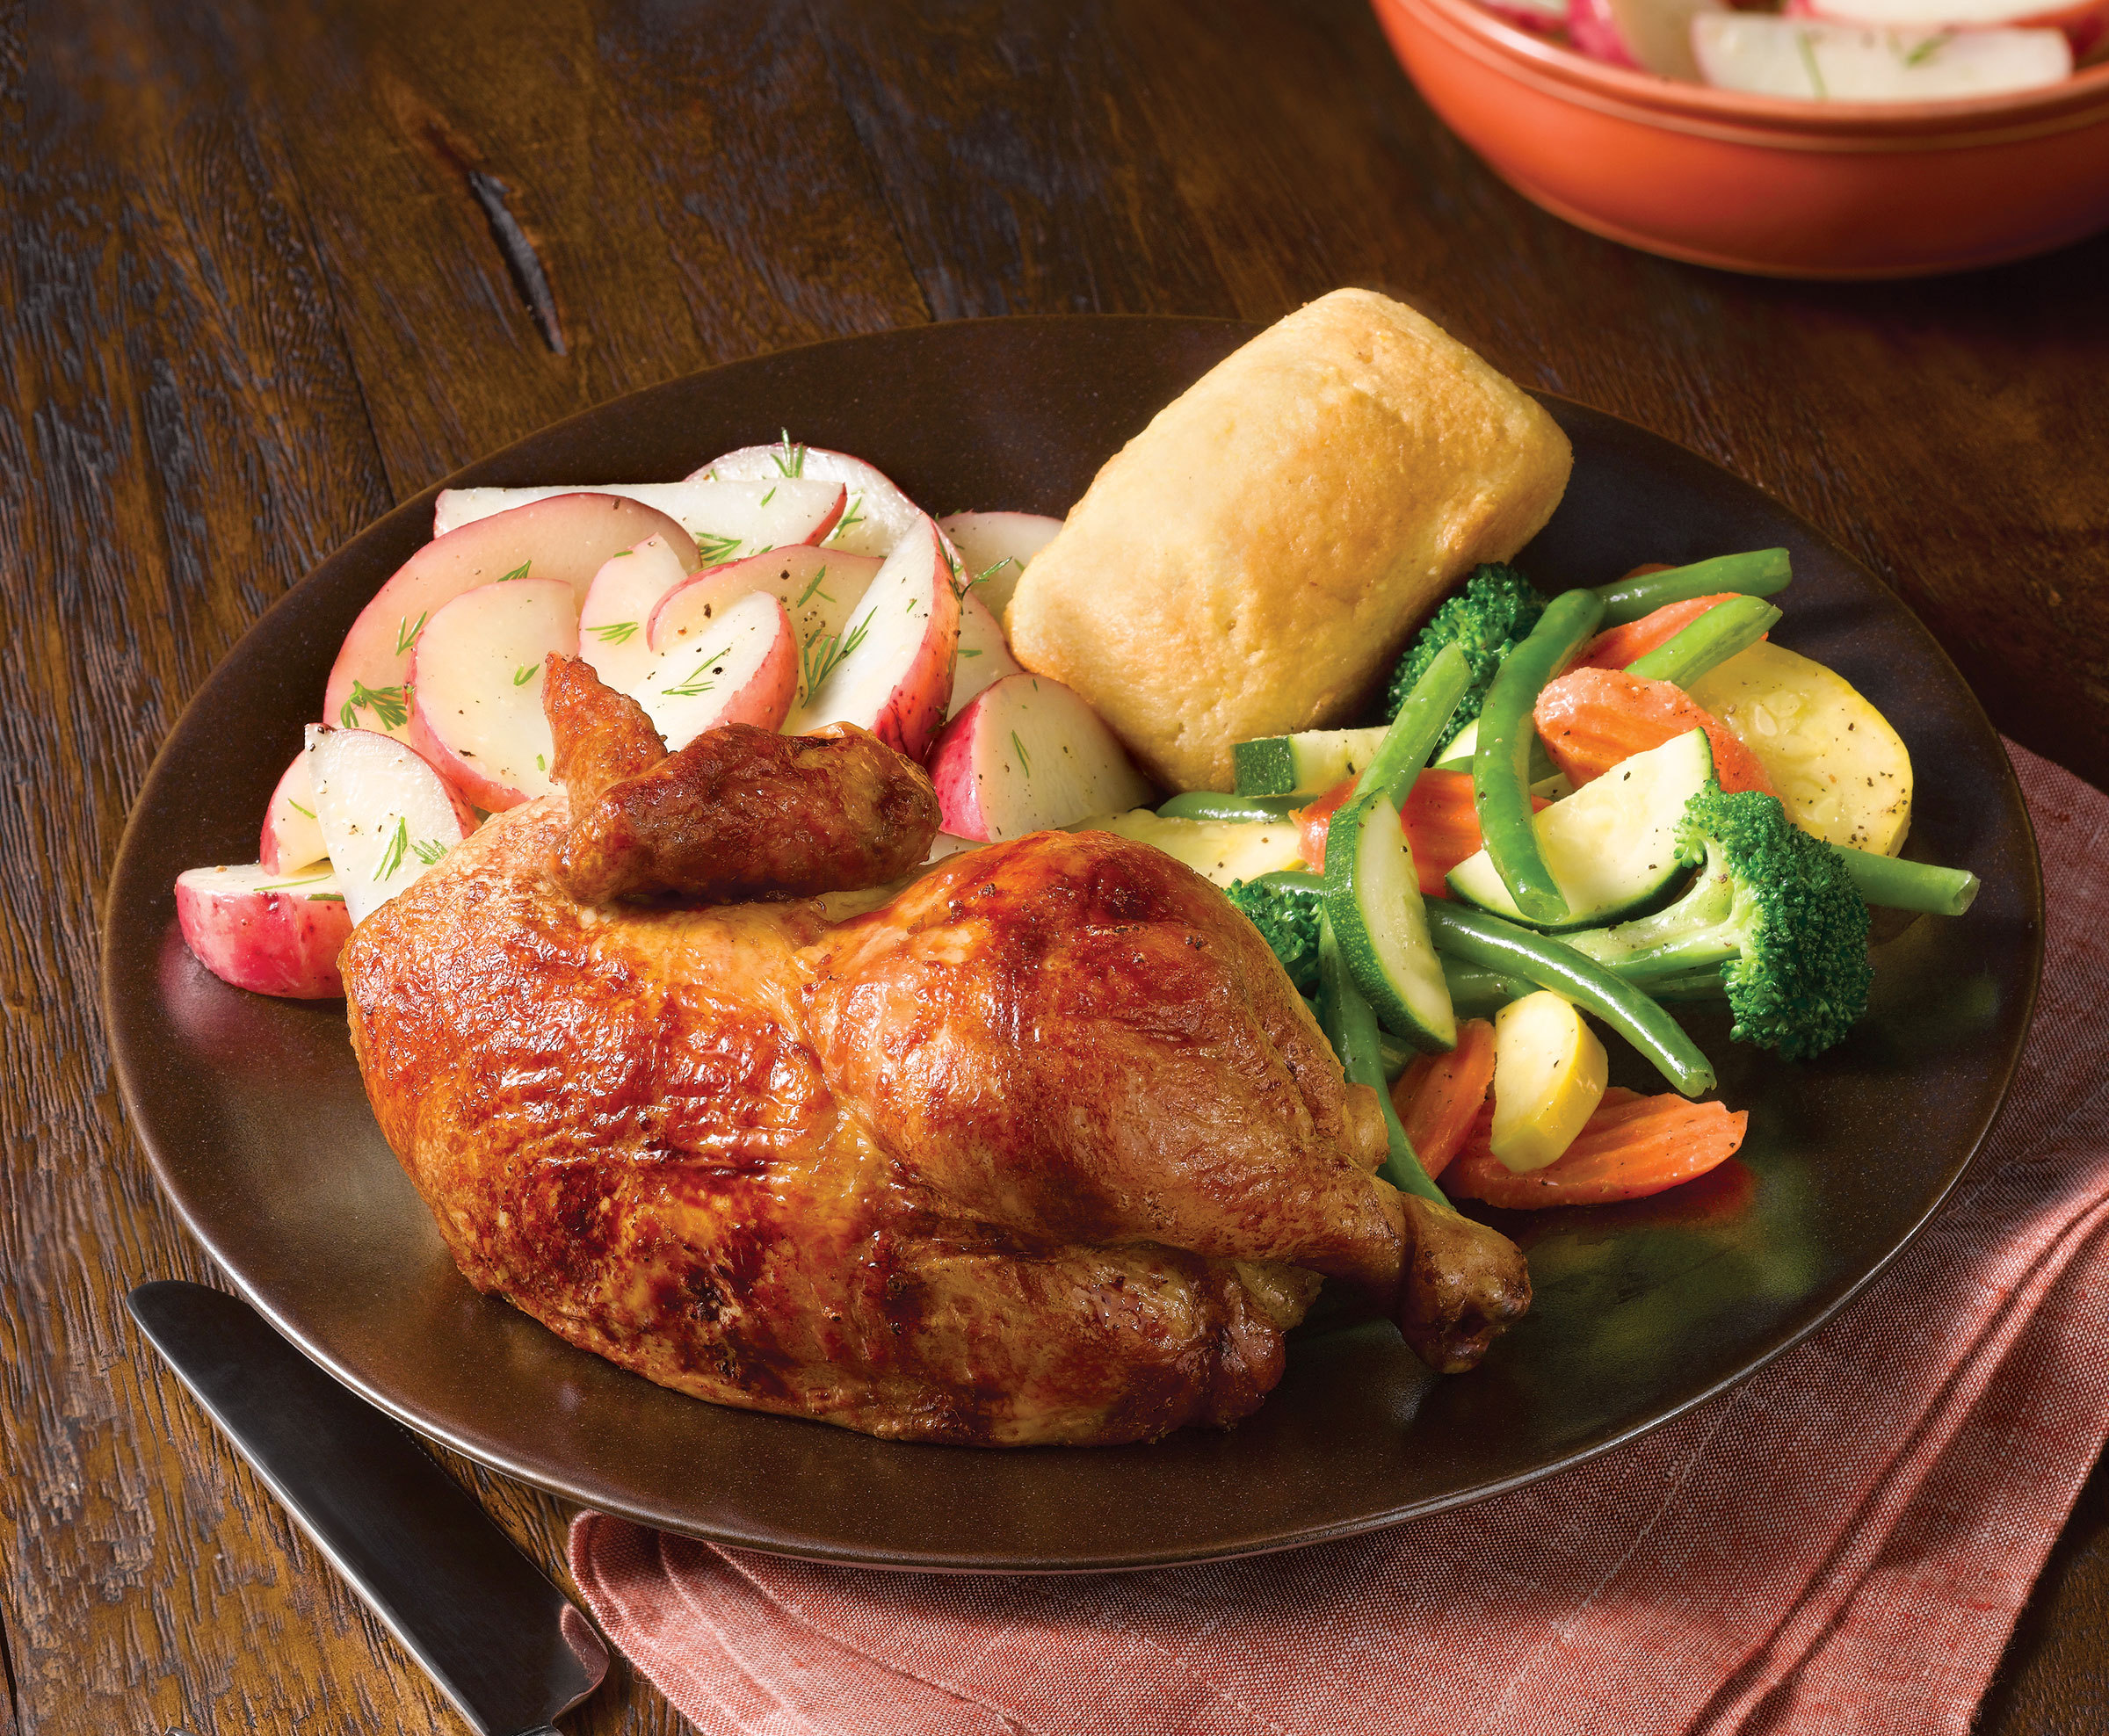 """Boston Market Offers Taxpayers Relief with """"Tax Day Deal Chicken Meal"""" - Two Half-Chicken Individual Meals $10.40. (Photo: Business Wire)"""